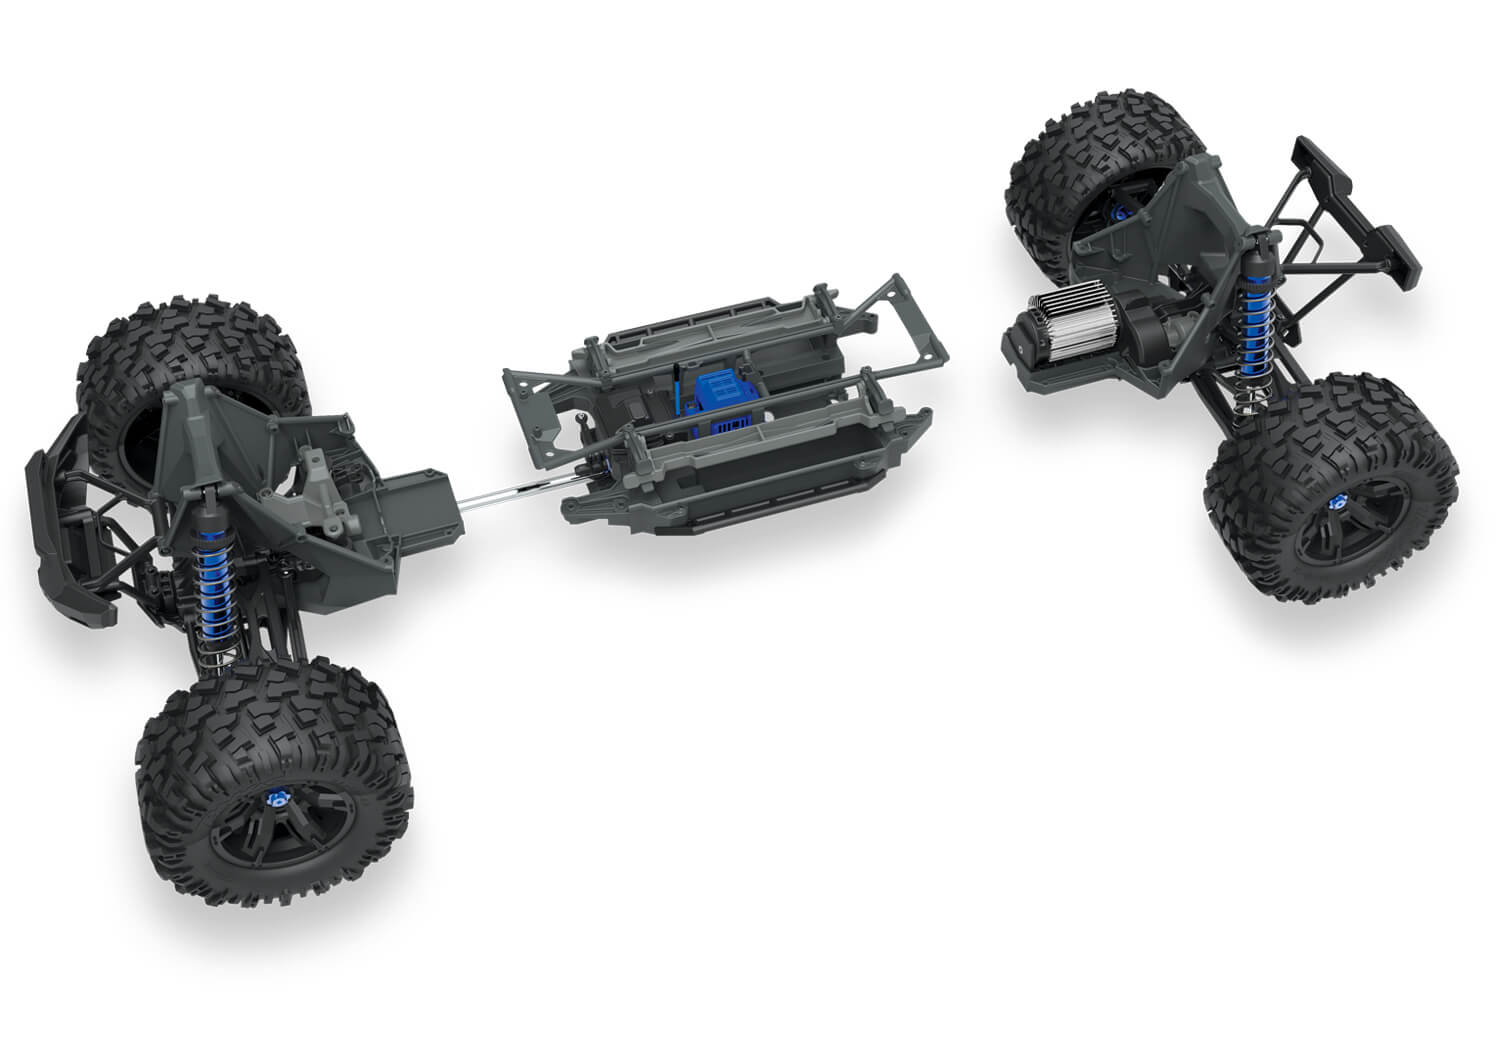 traxxas truck with 5 Traxxas Trx77076 4 on Teaser Traxxas Land Rover Scale Crawler likewise 5 Traxxas Trx77076 4 in addition Revell Dumper Truck P 20805 as well Watch likewise Project Traxxas Summit Lt Scale Conversion.